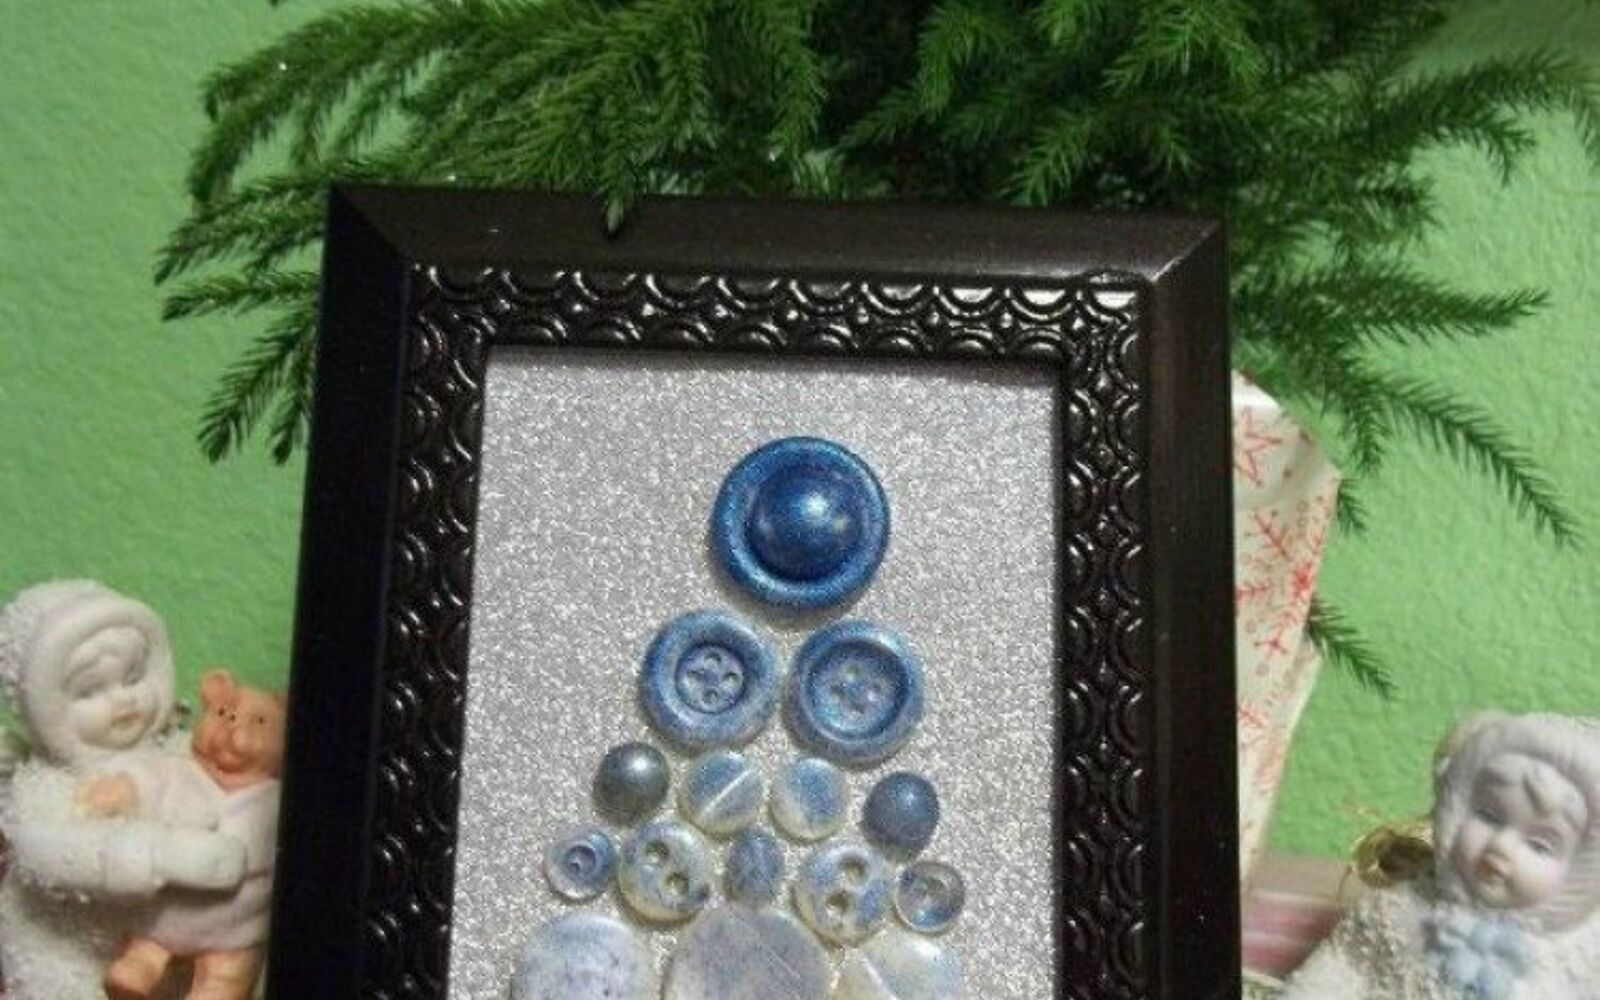 s 15 quick and easy gift ideas using buttons, Frame them as a Christmas tree